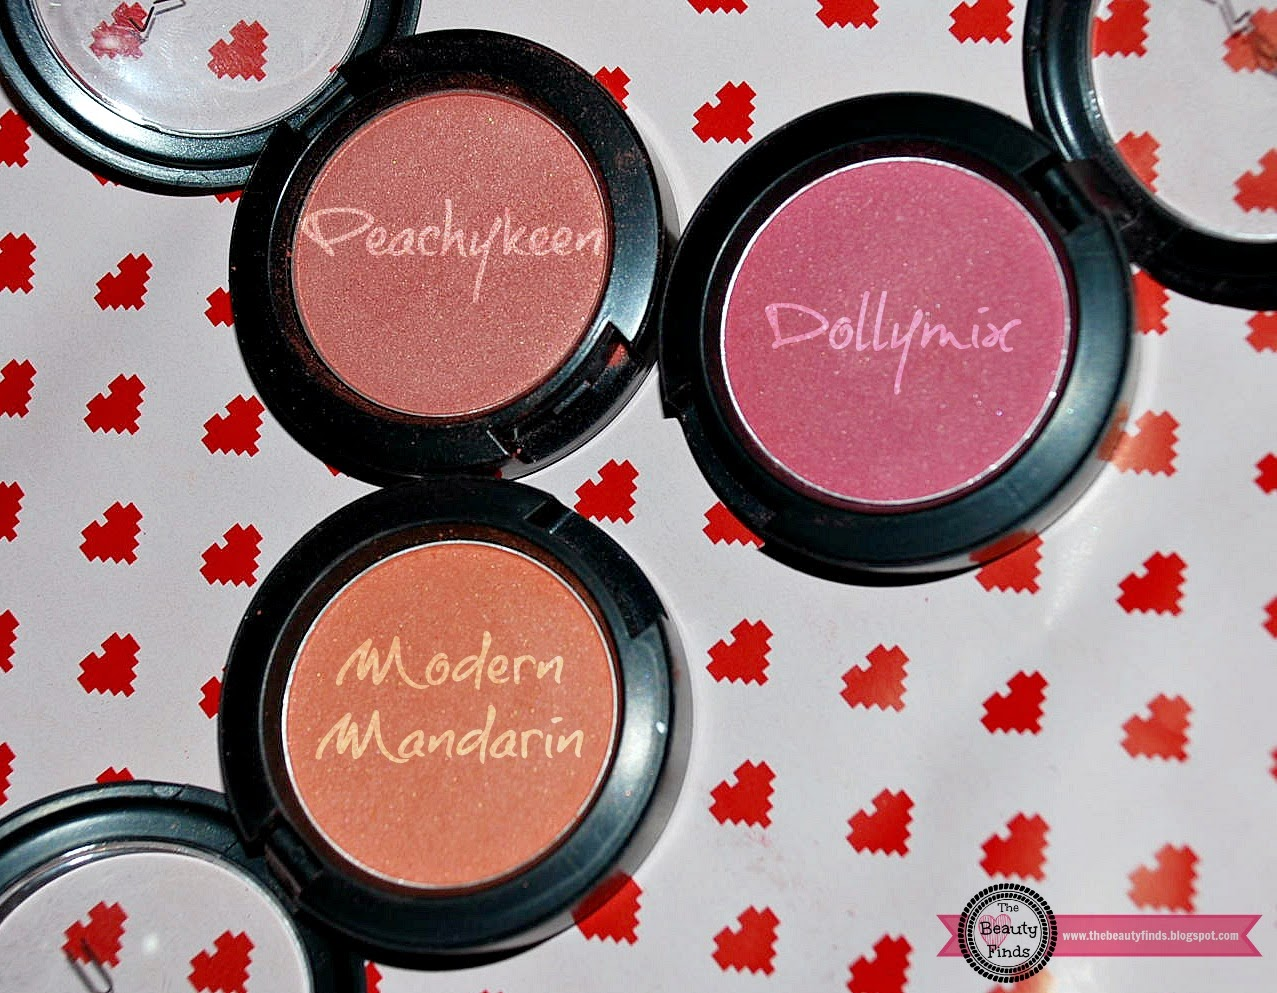 The Beauty Finds: MAC Blush Collection